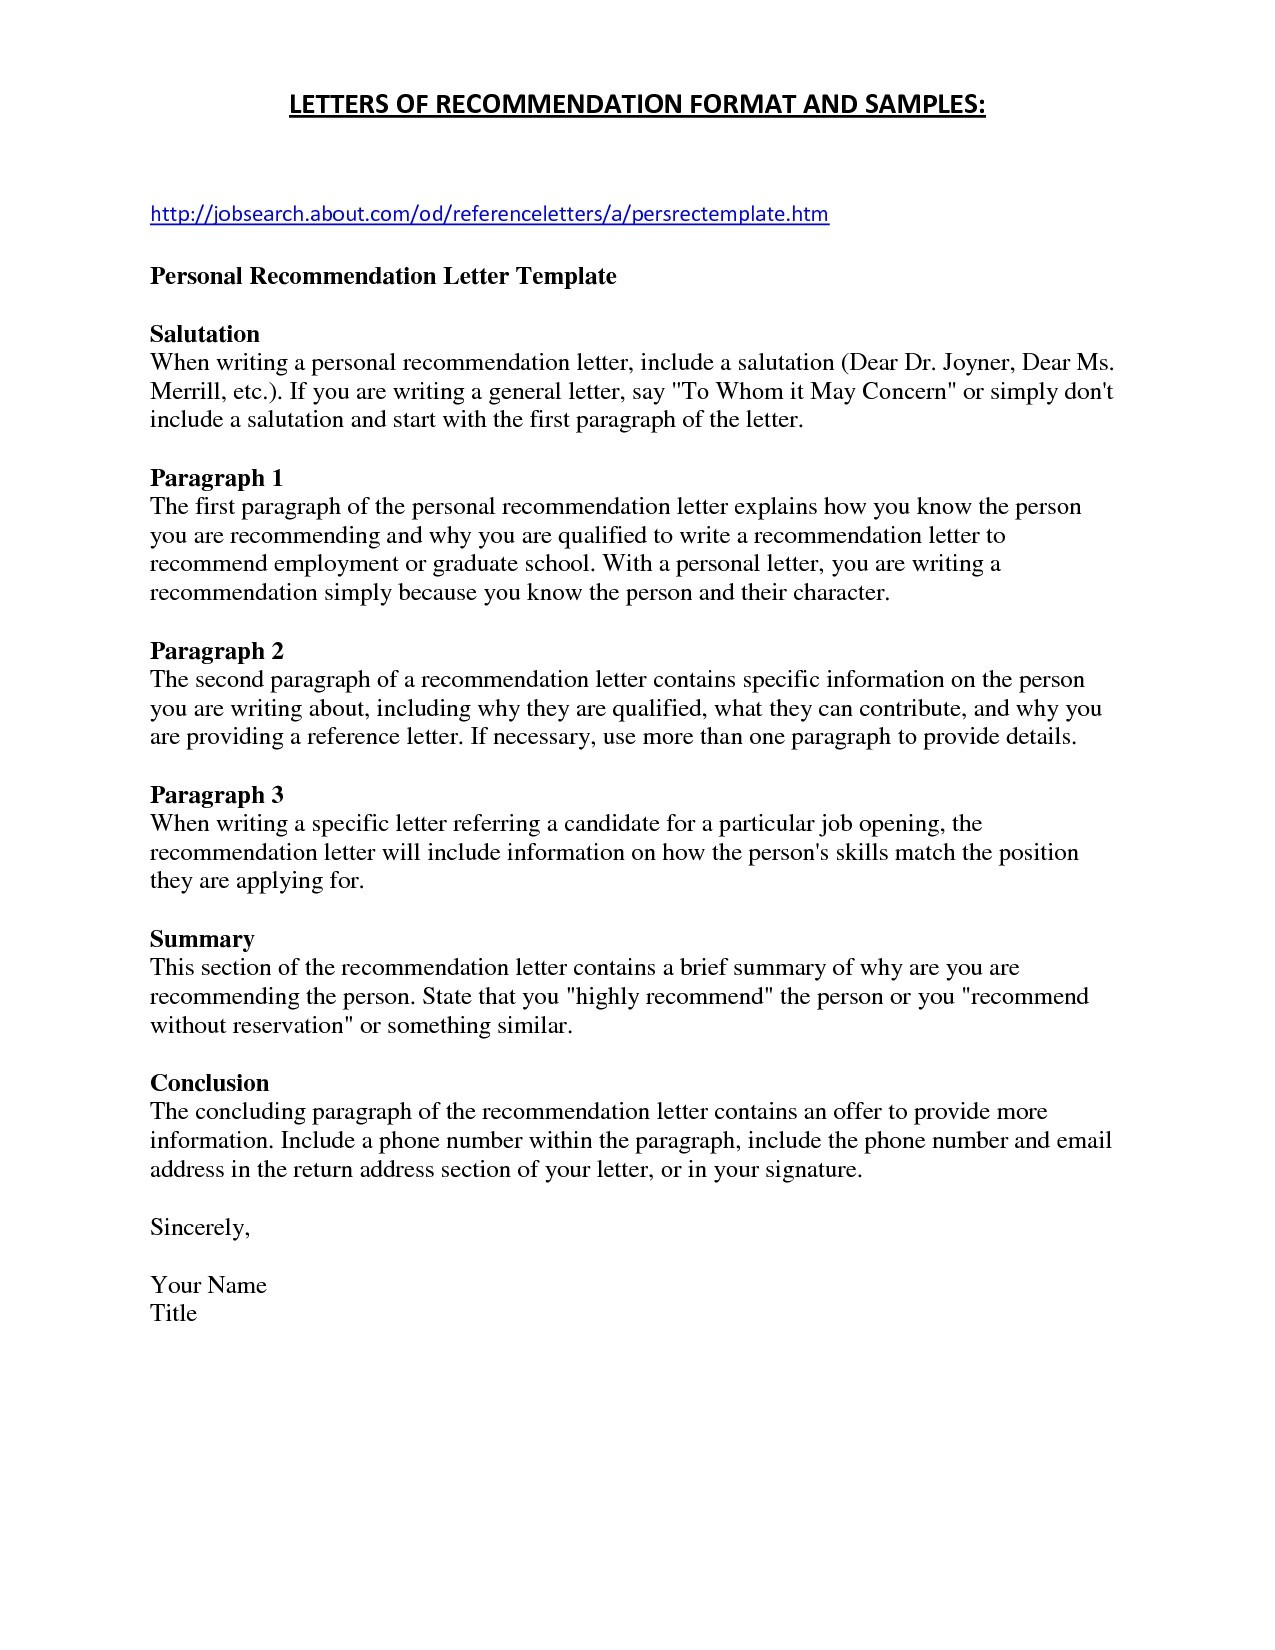 School Recommendation Letter Template - Sample Job Re Mendation Letter for Employee New Letter Re